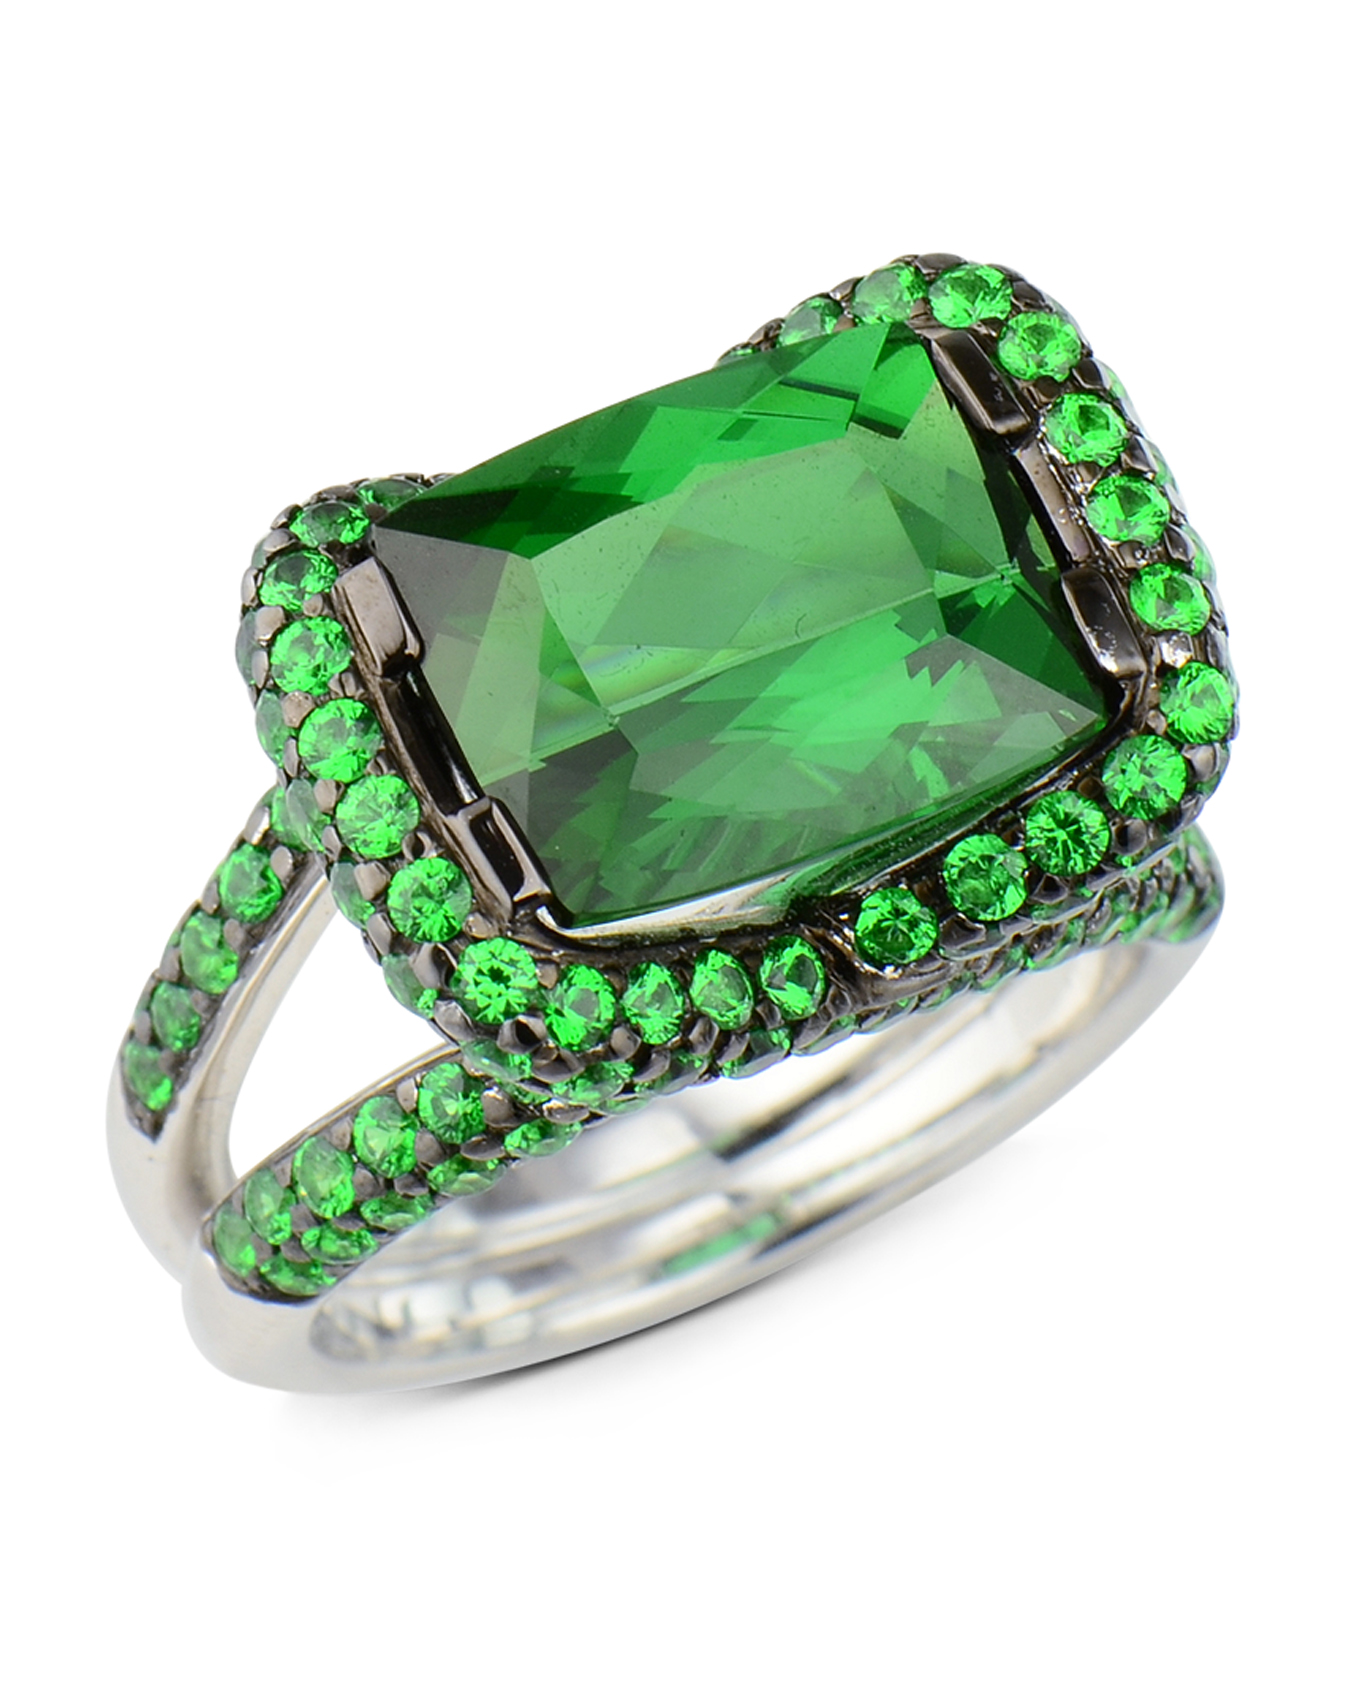 design tsavorite rings gemstone shop karo uses meaning garnet value lc info stone ring cluster education